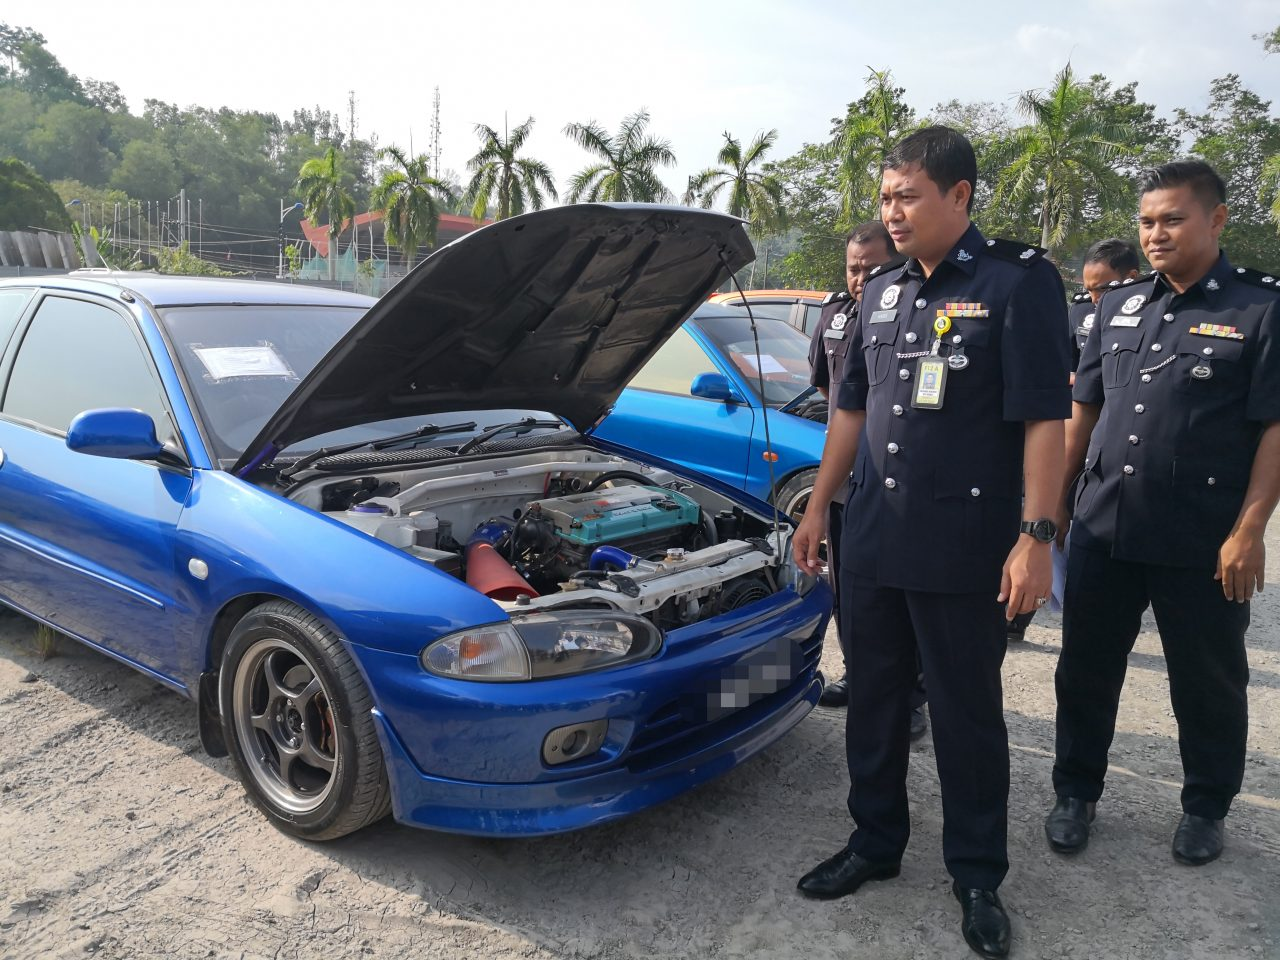 17 vehicles seized for dangerous driving